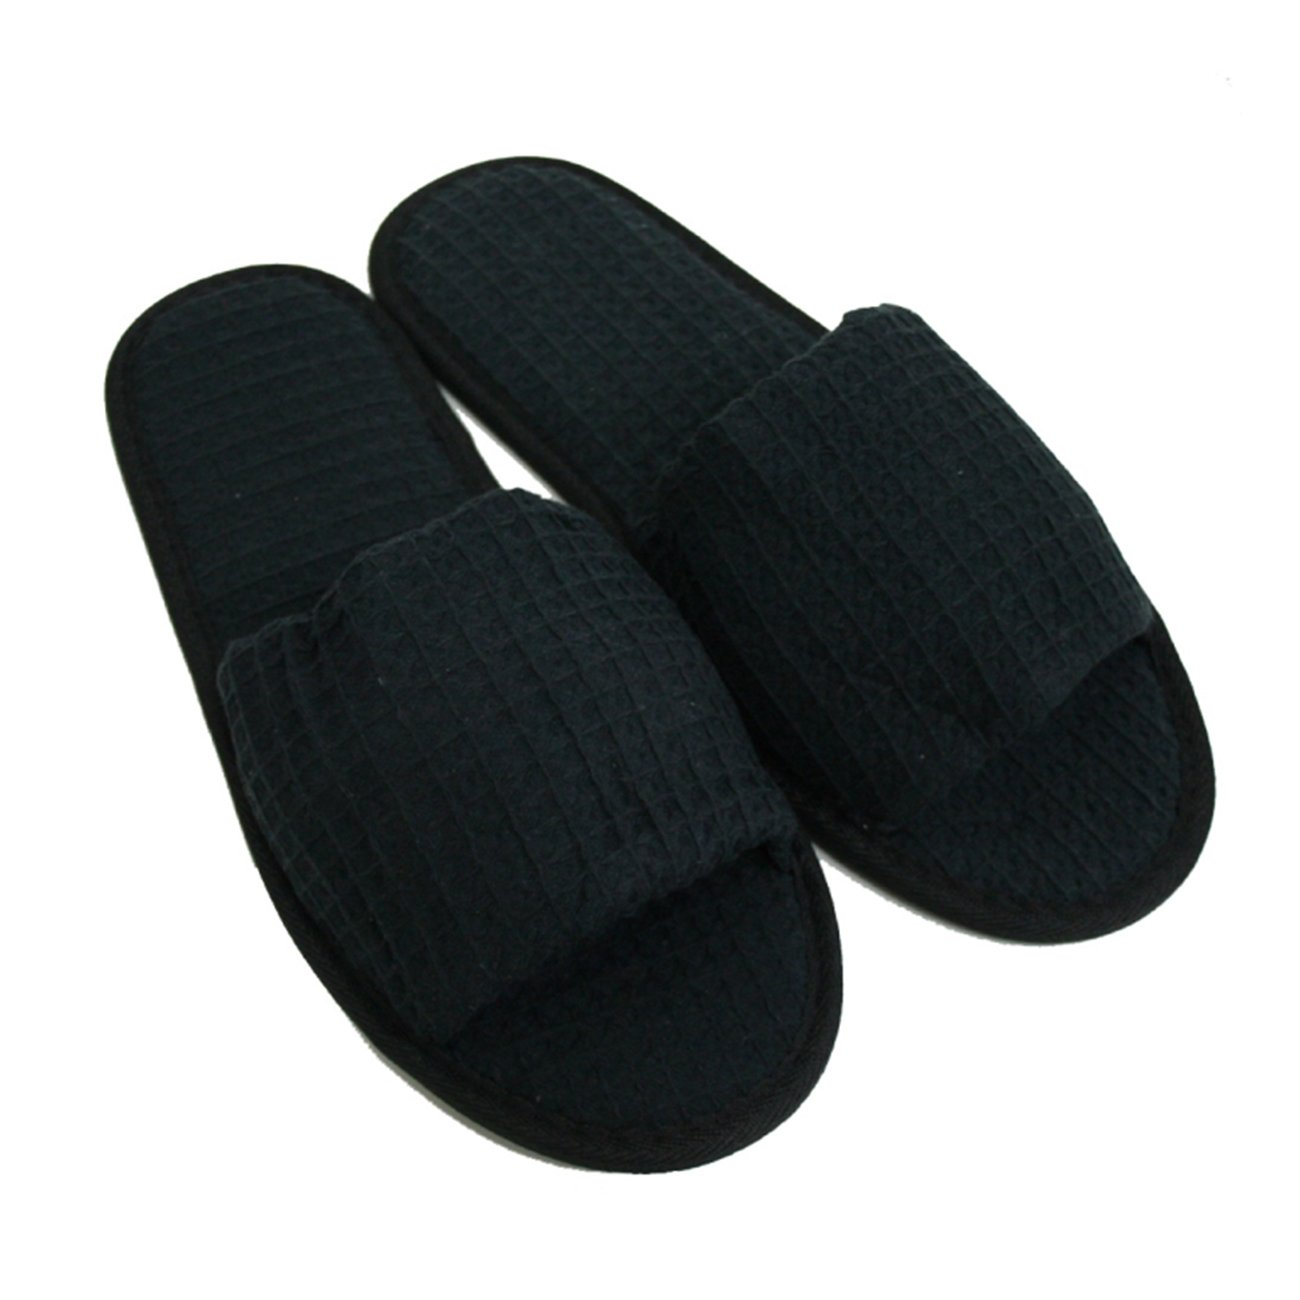 Waffle Open Toe Adult Slippers Cloth Spa Hotel Unisex Slippers for Women and Men Wholesale 100 Pcs Black